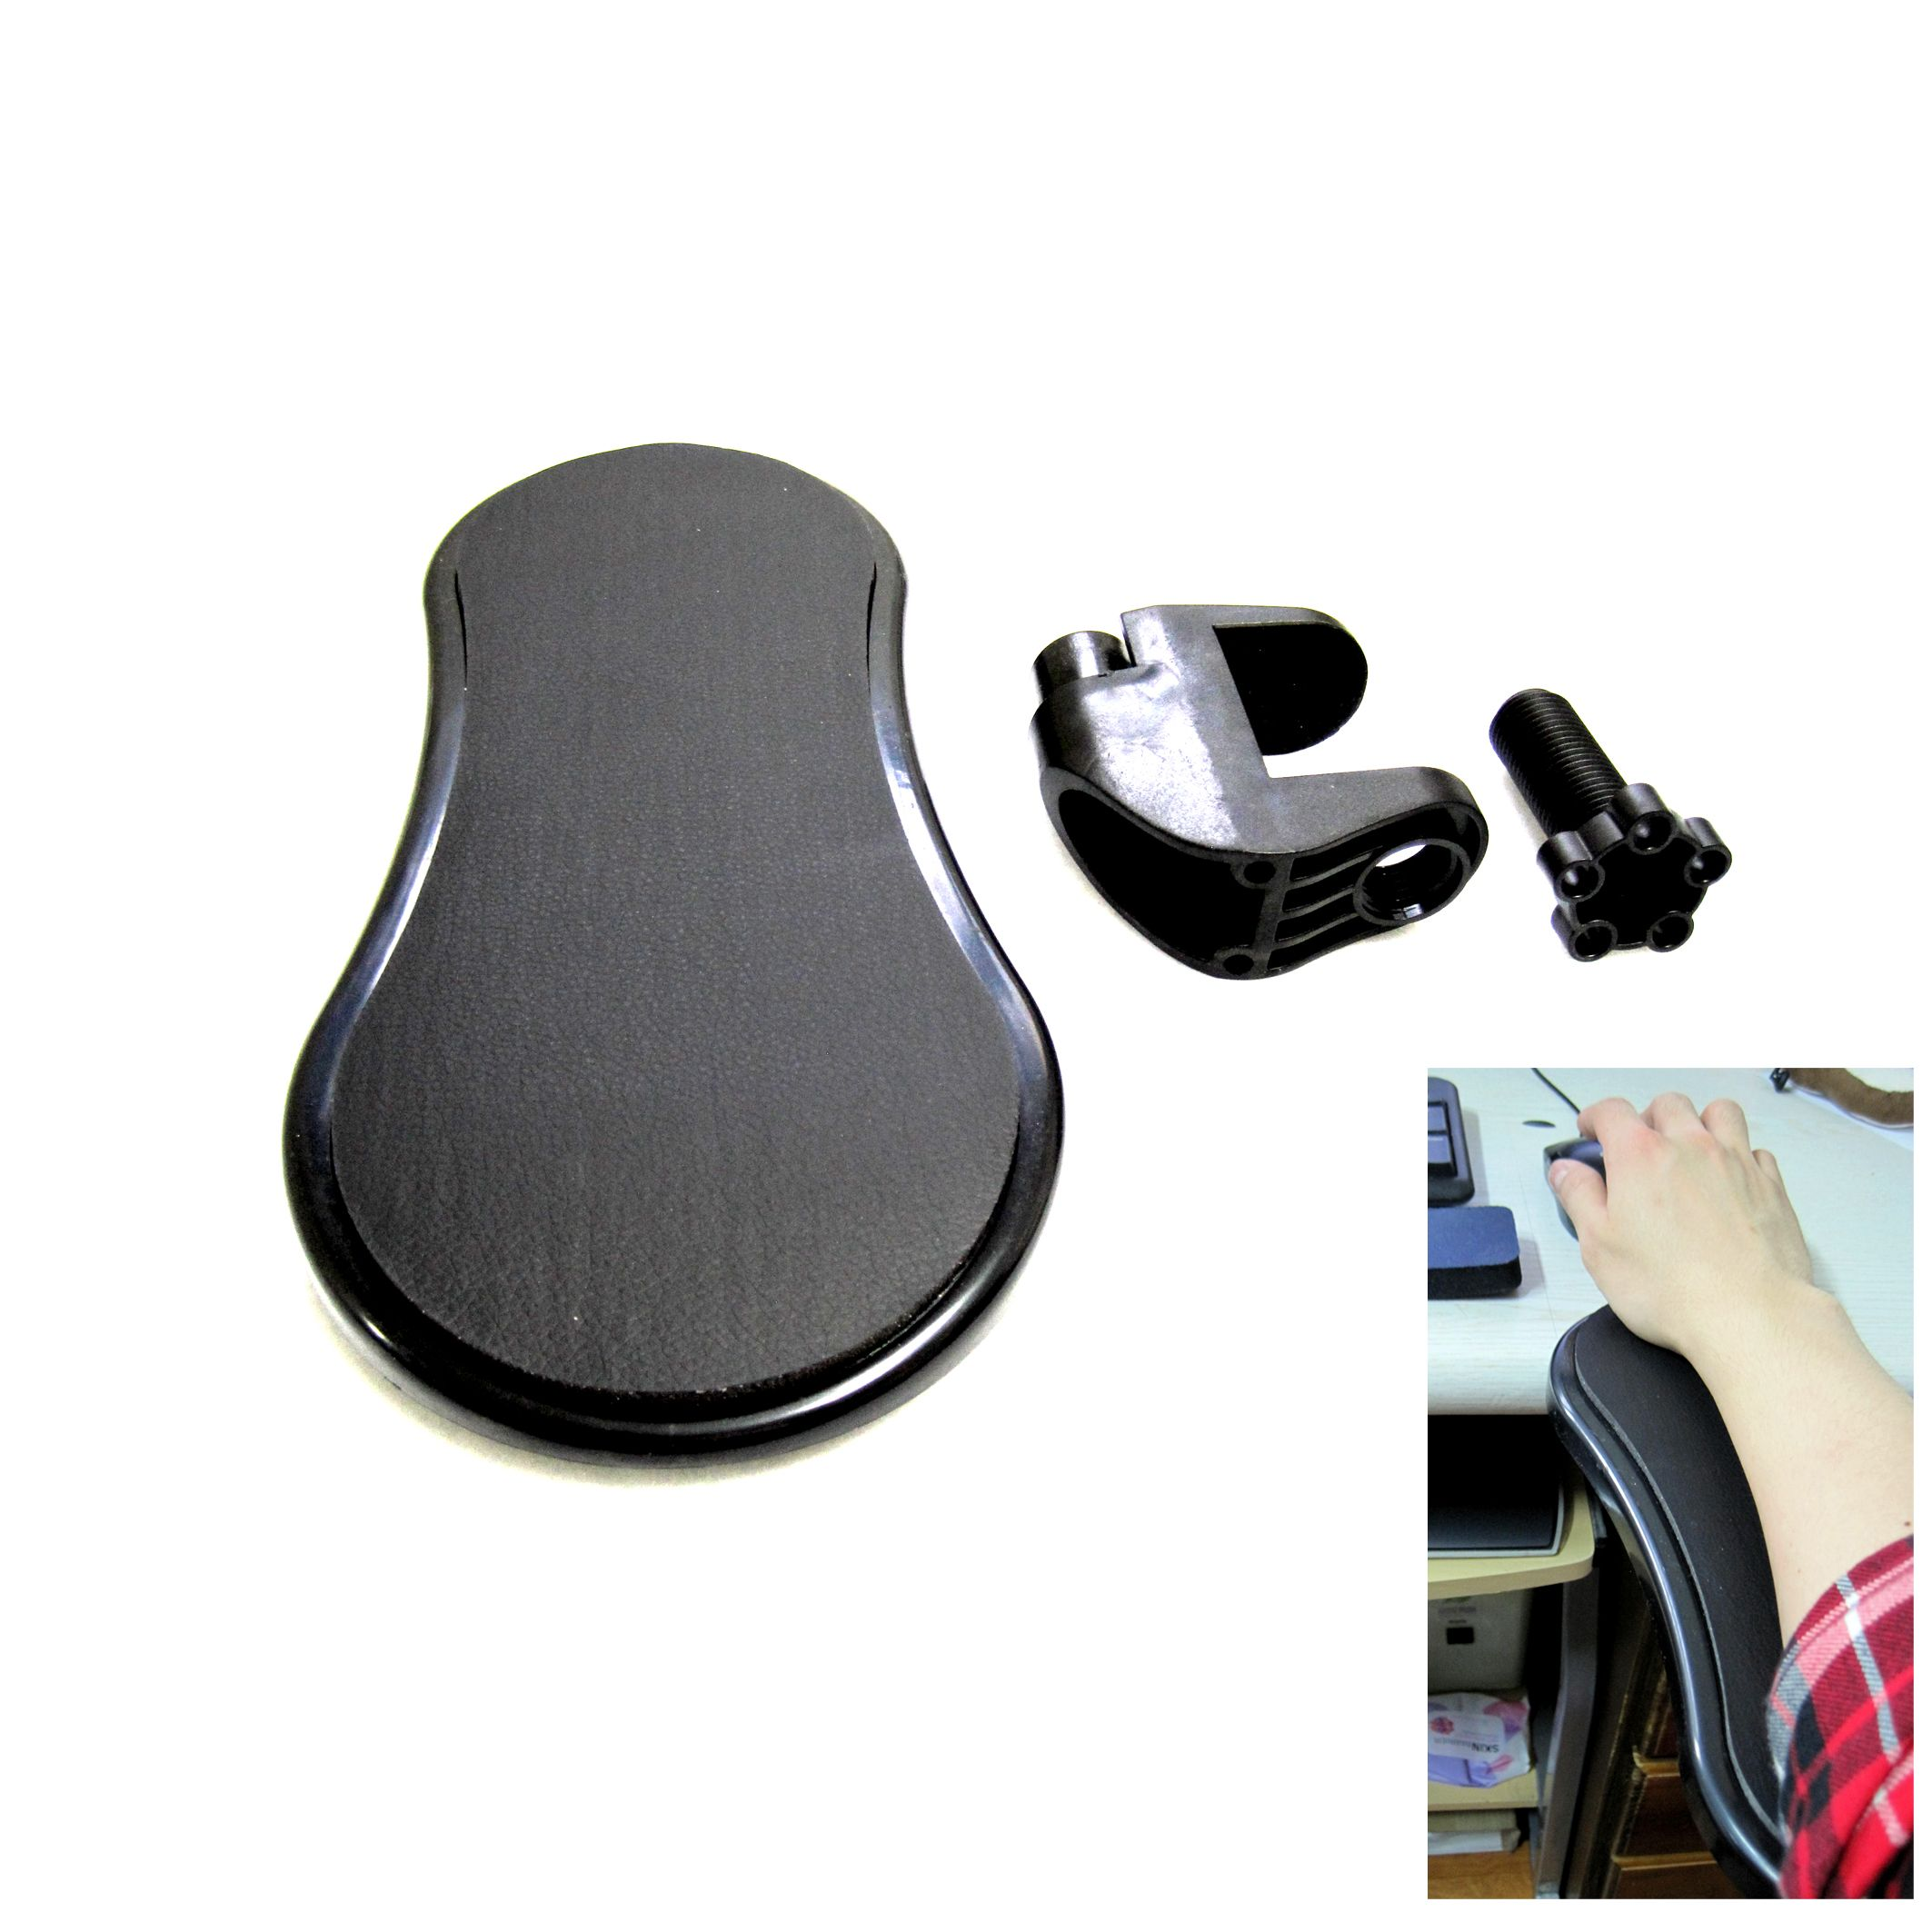 New Easy Arm Pad For Desk Or Chair Arm Rest Mouse Pad